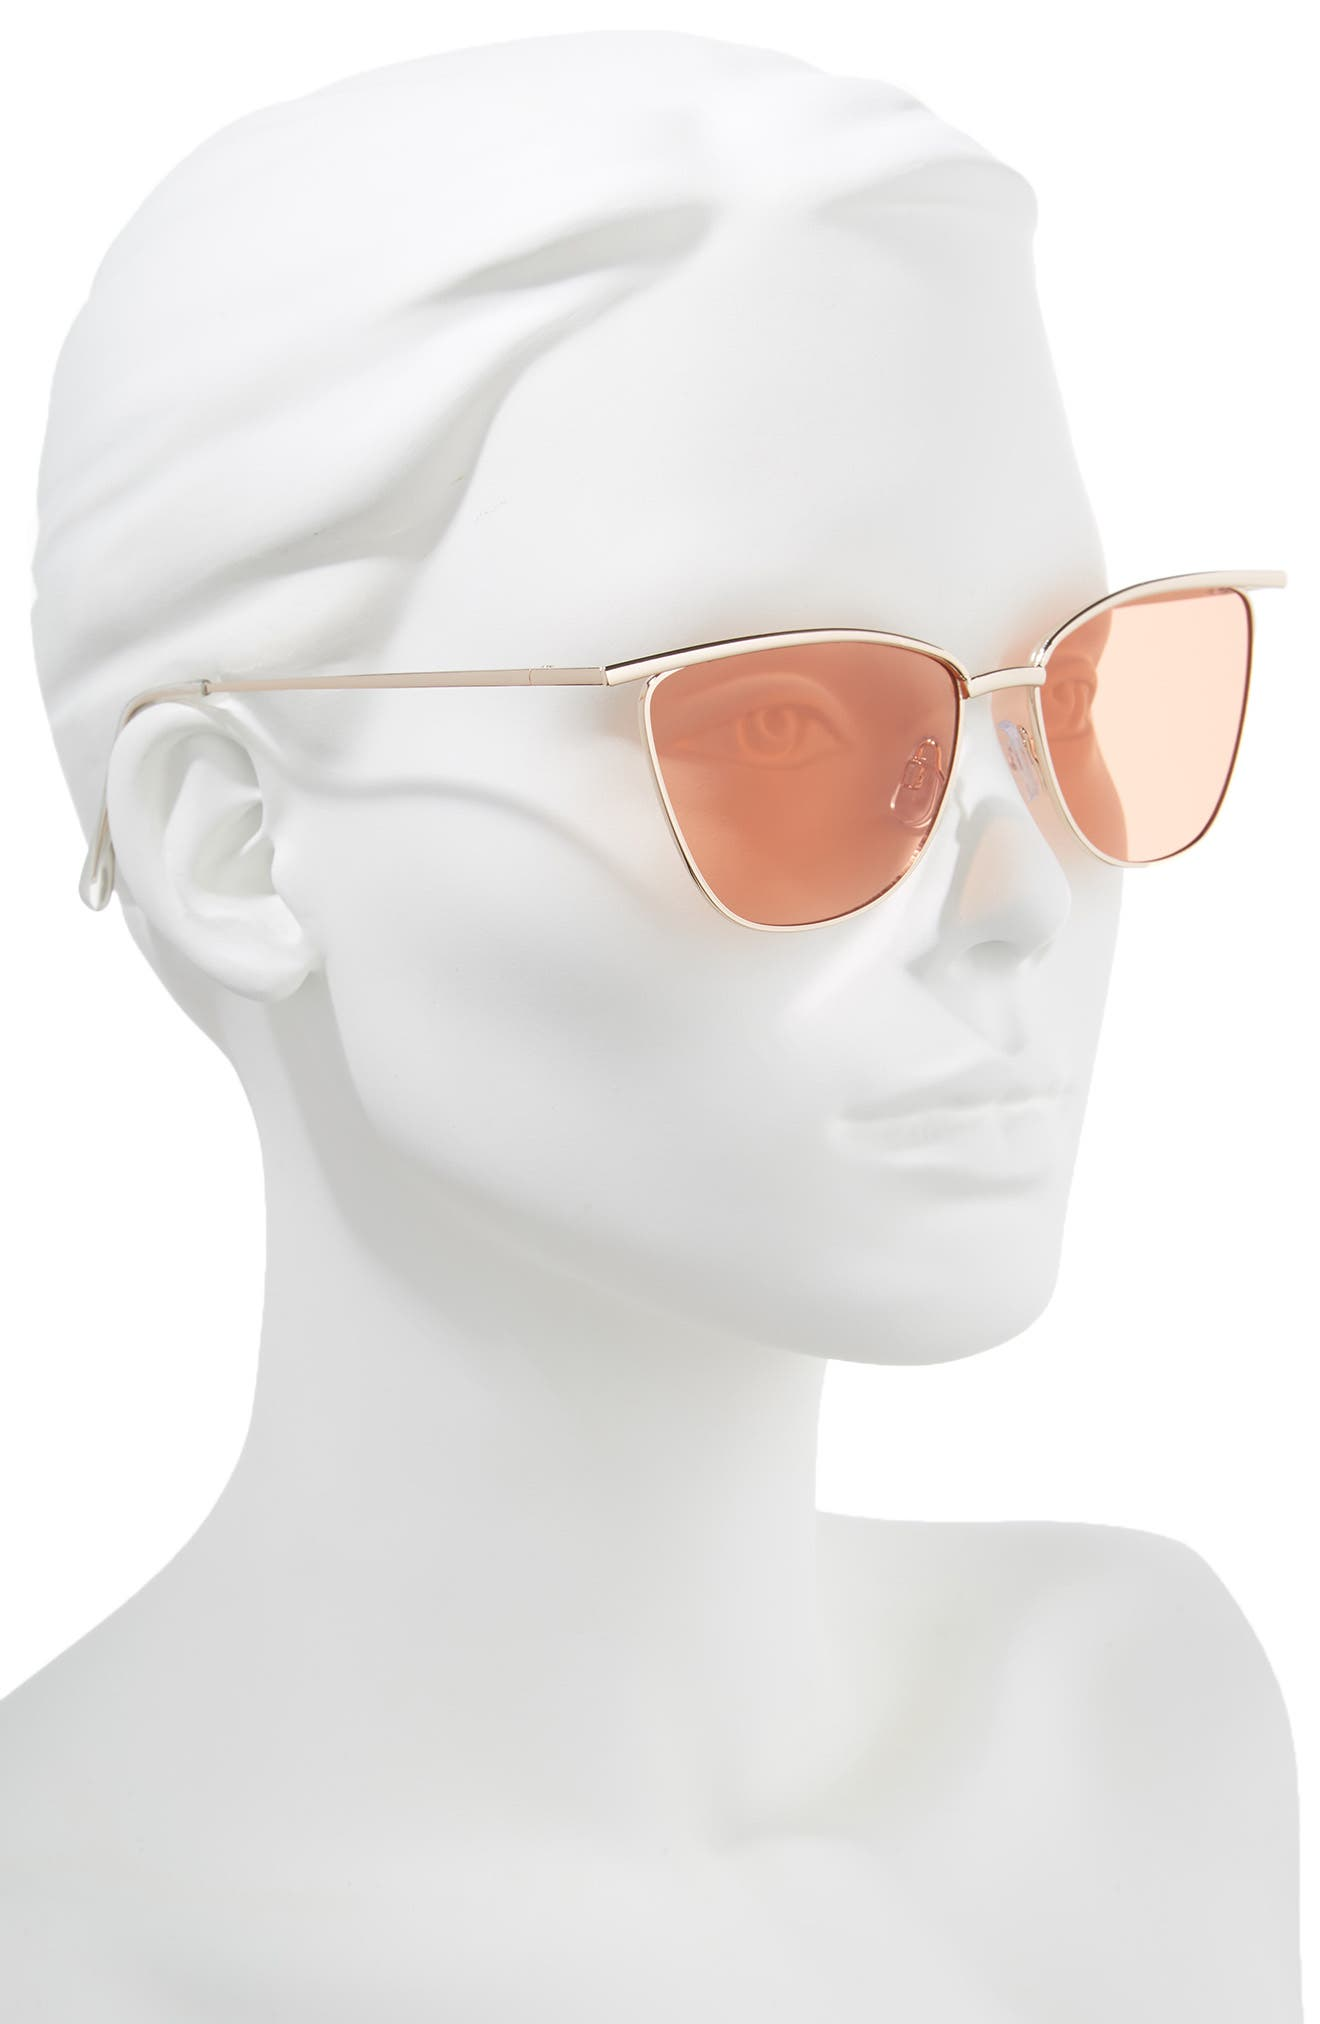 55mm Winged Cat Eye Sunglasses,                             Alternate thumbnail 2, color,                             710